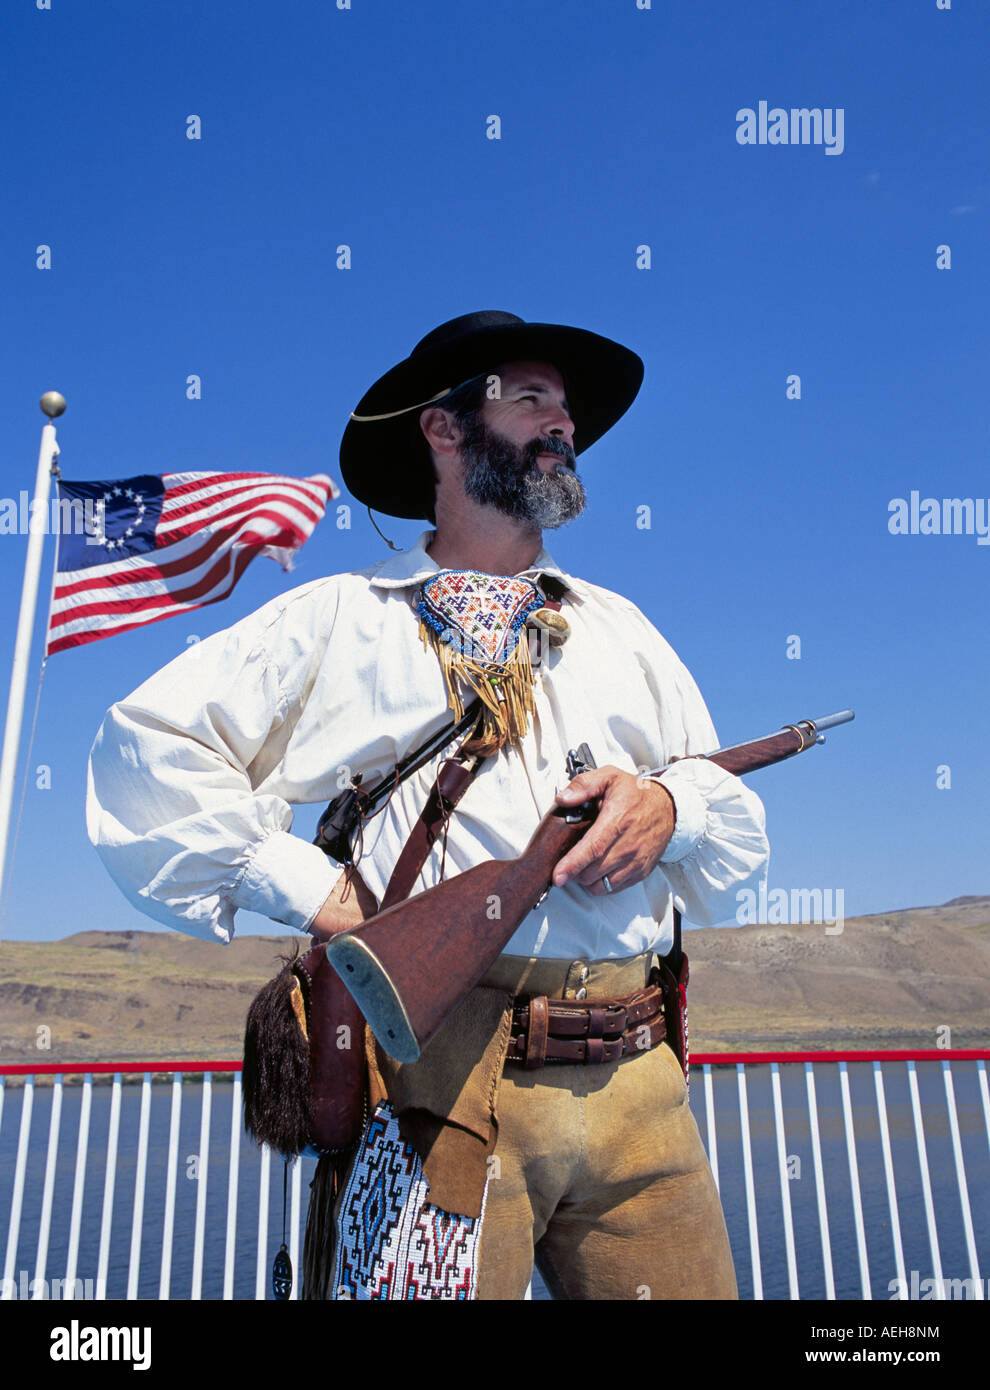 A man dressed as a member of the Lewis and Clark Expedition holds a muzzle loading rifle along the Columbia River, - Stock Image